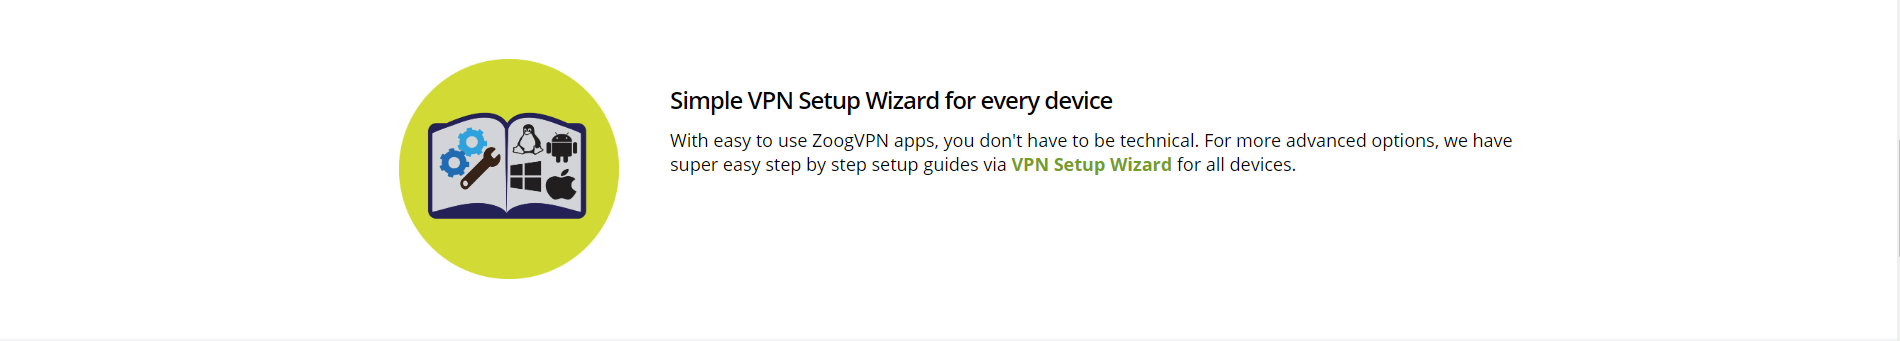 sign up process and setup wizard